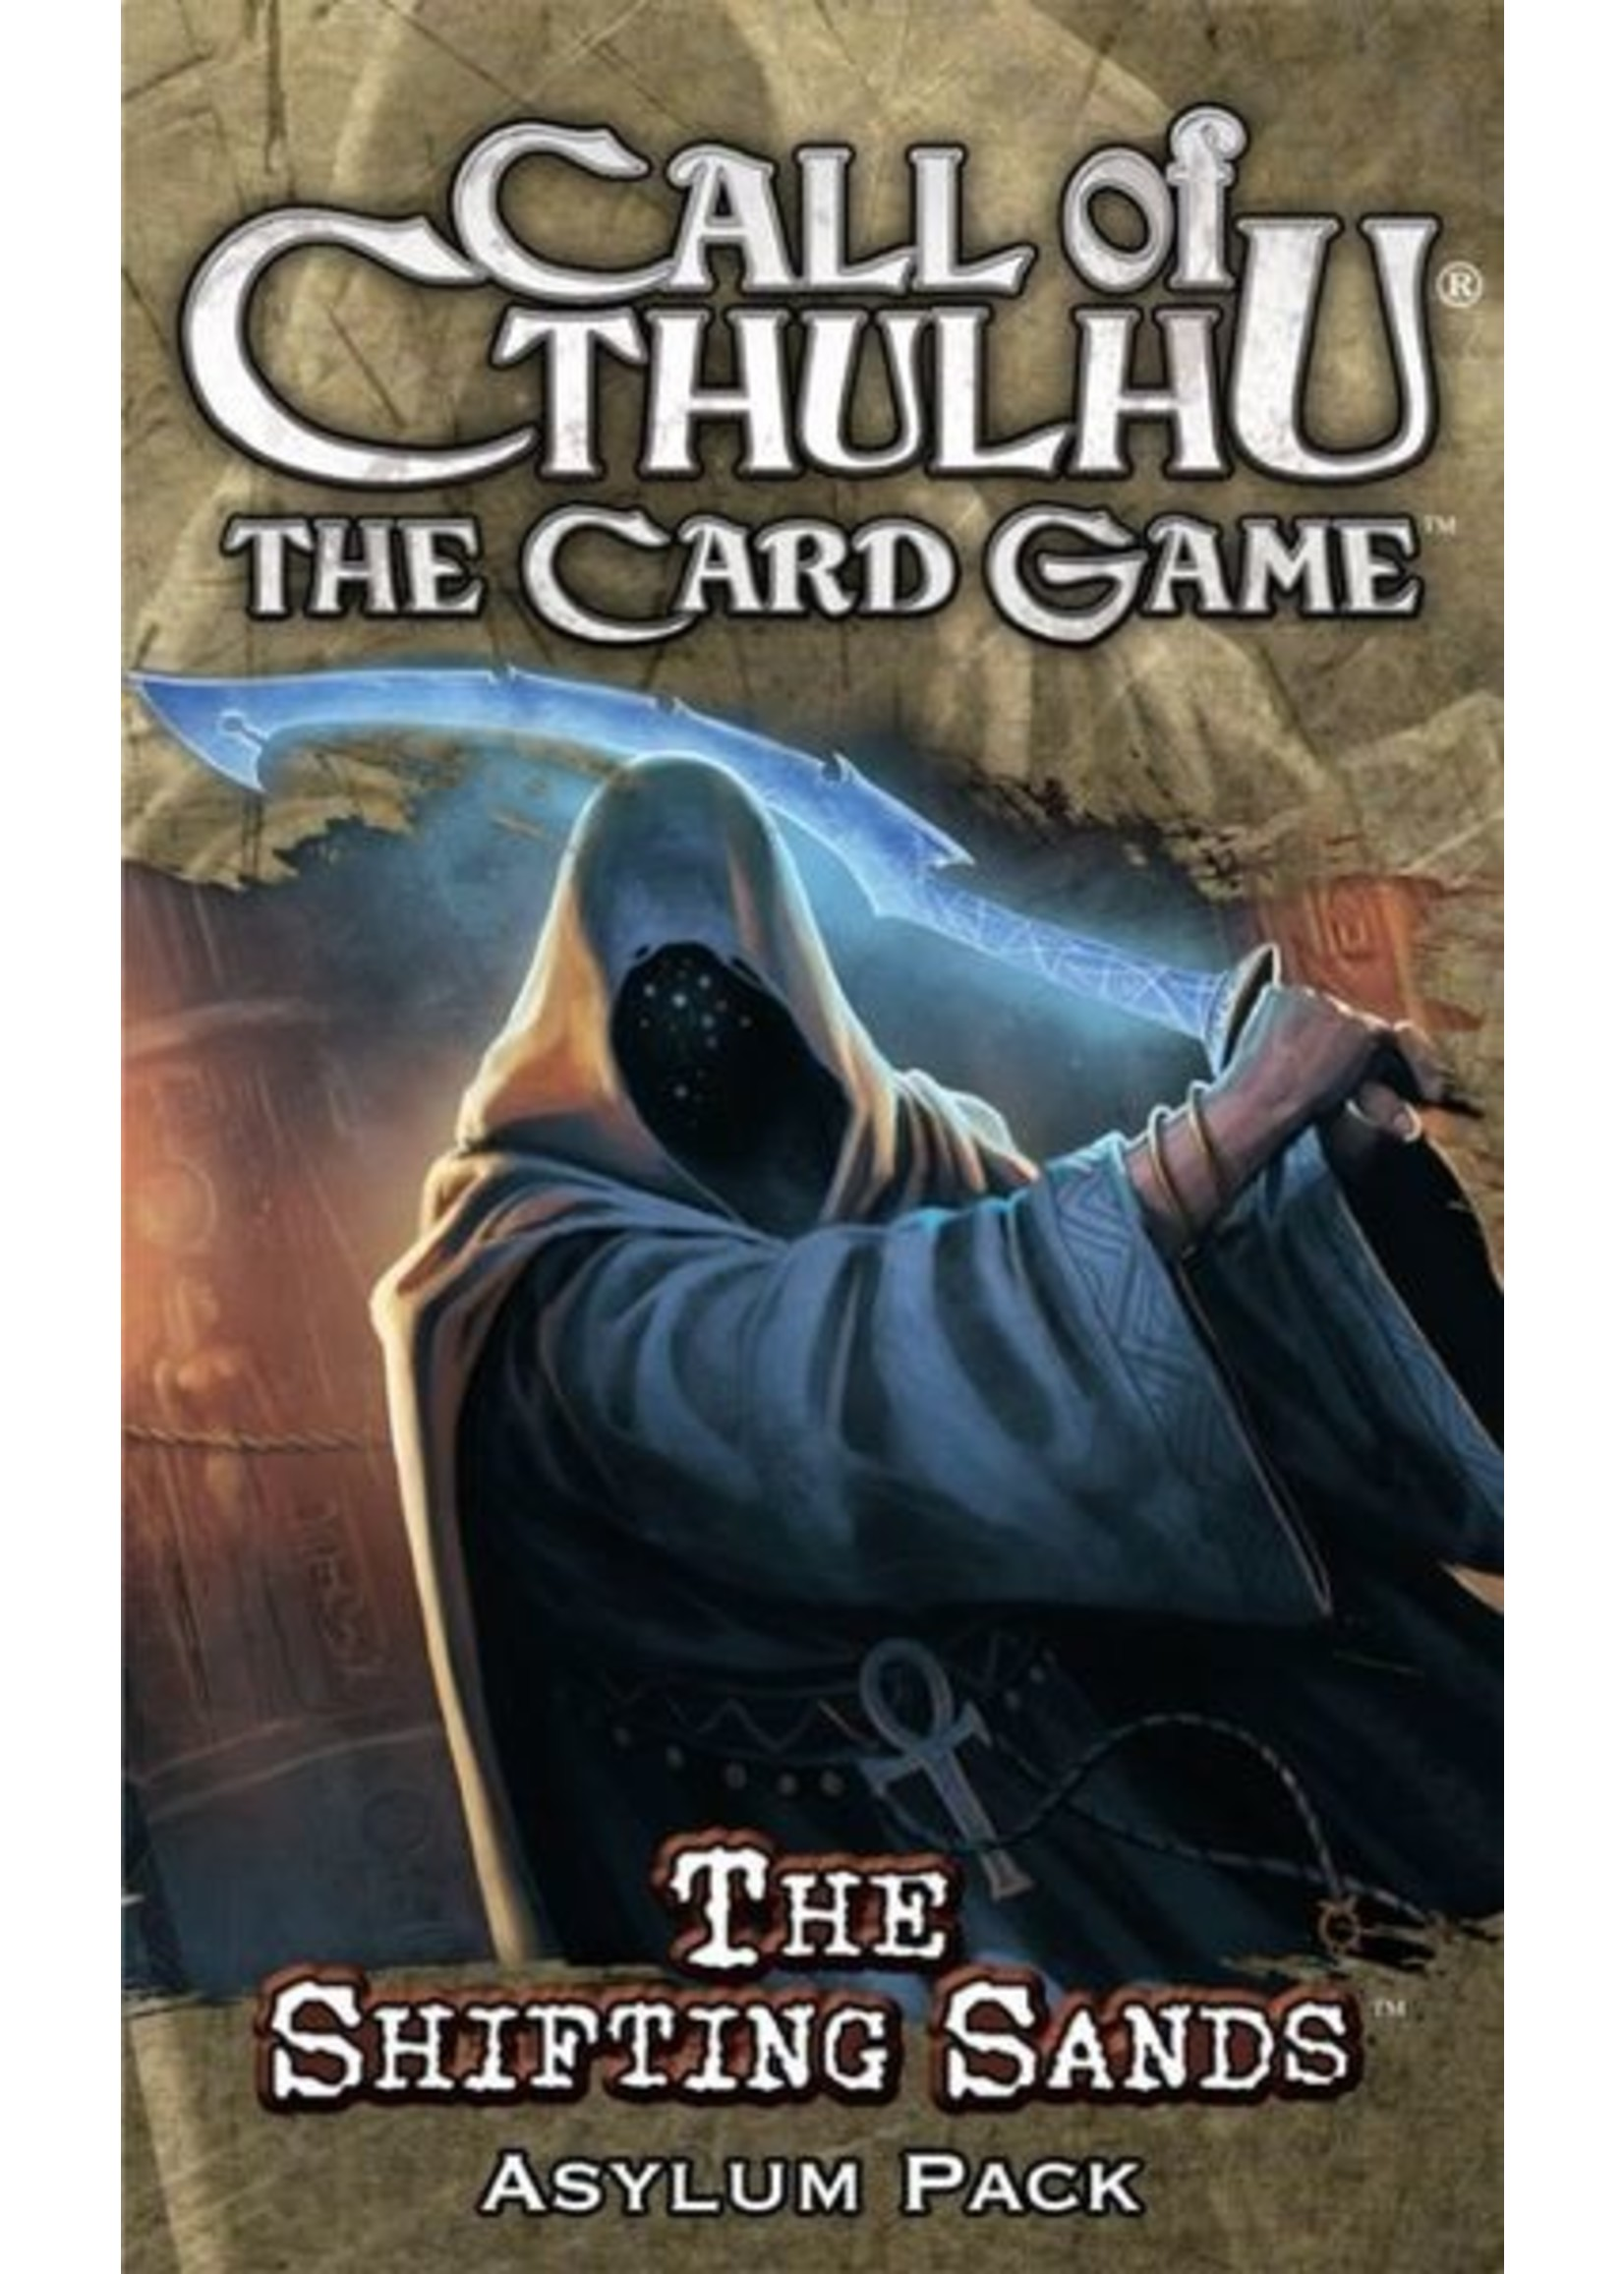 Call of Cthulhu LCG: The Shifting Sands Asylum Pack